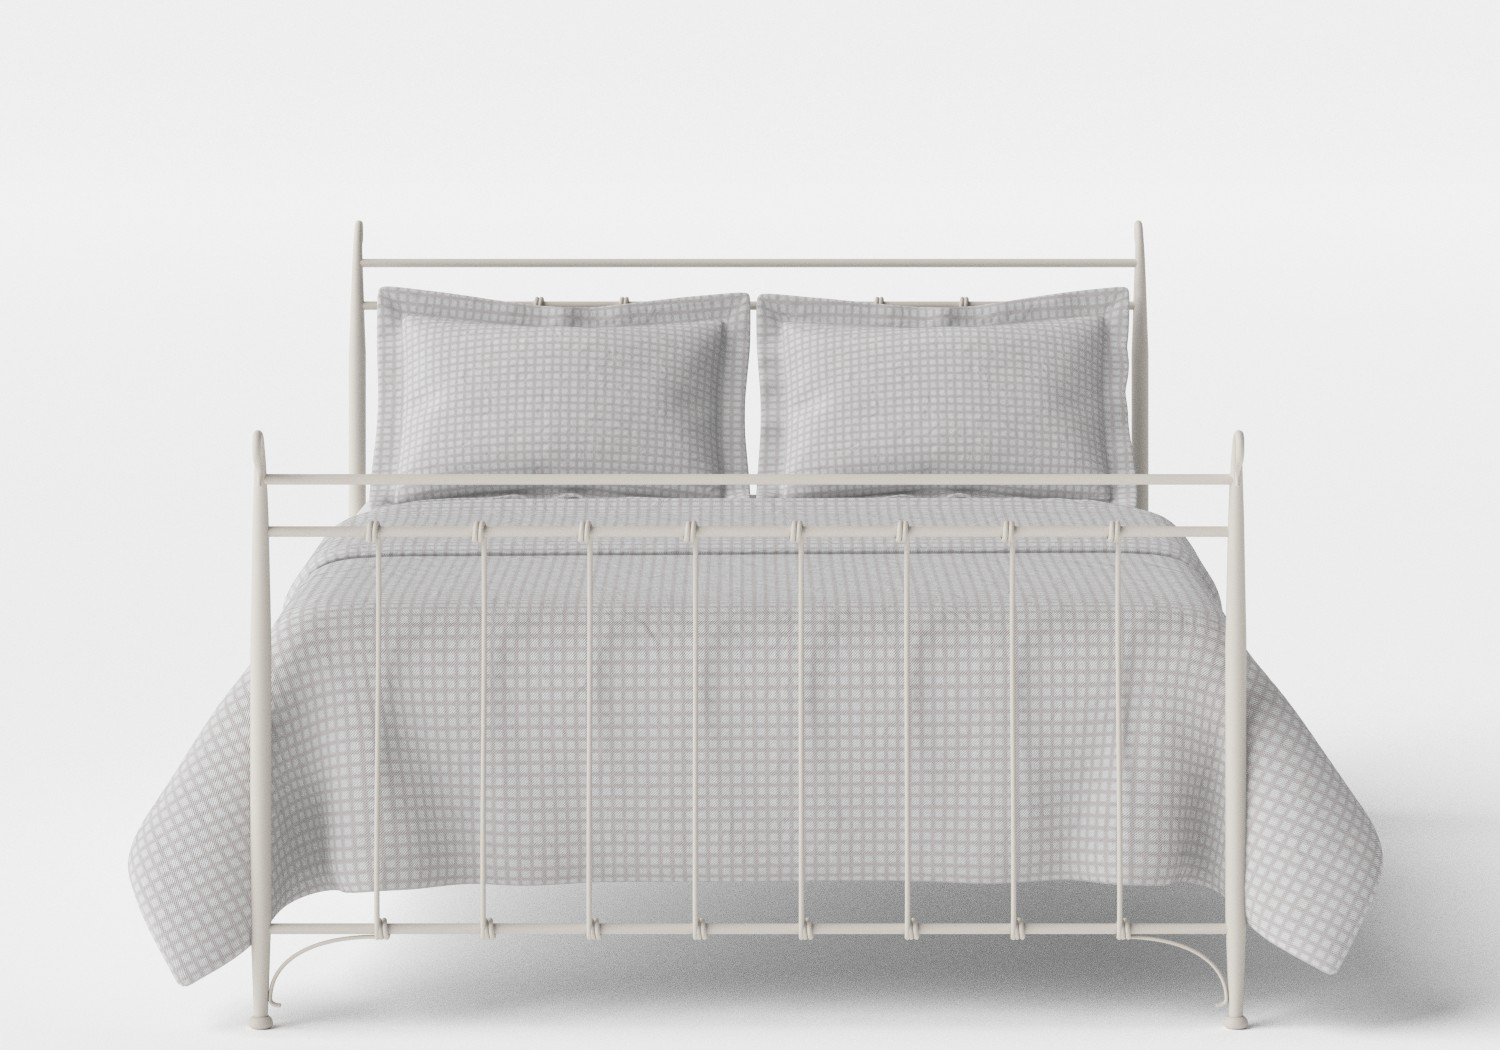 Tiffany iron bed in Glossy Ivory